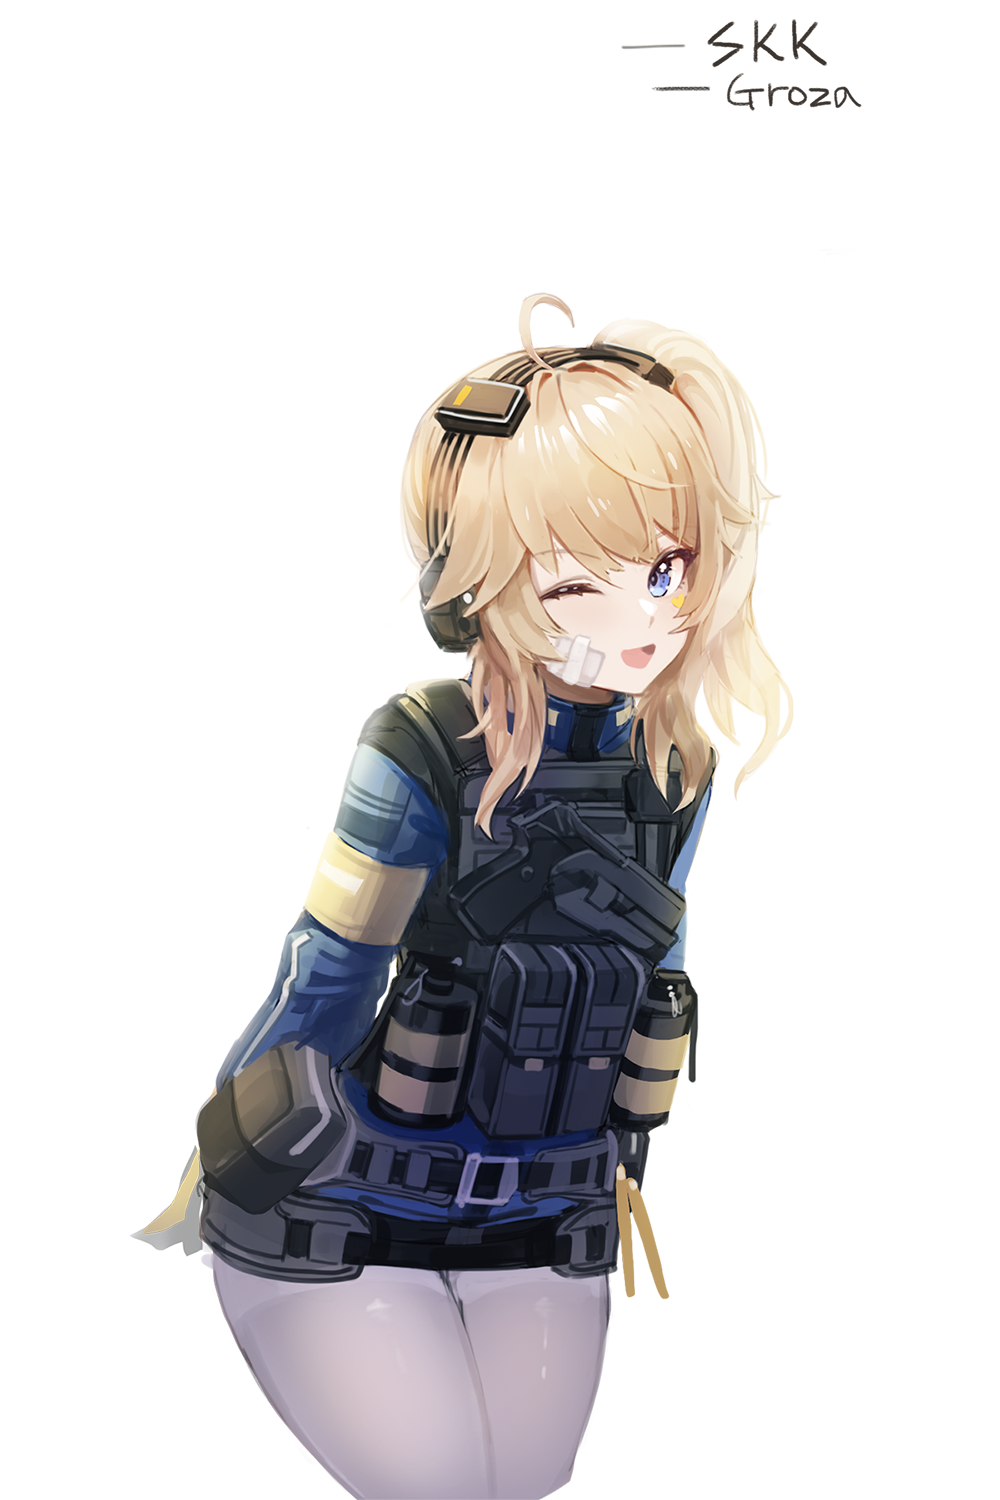 1girl :d ahoge arms_behind_back bandage_on_face bandages bangs blonde_hair blue_eyes blue_jacket cowboy_shot dano explosive girls_frontline girls_frontline_2:_exilium grenade gun handgun headset highres holster holstered_weapon jacket load_bearing_vest long_hair long_sleeves looking_at_viewer one_eye_closed open_mouth pantyhose pouch side_ponytail smile solo tactical_clothes vepley_(girls_frontline_2) weapon white_background white_legwear